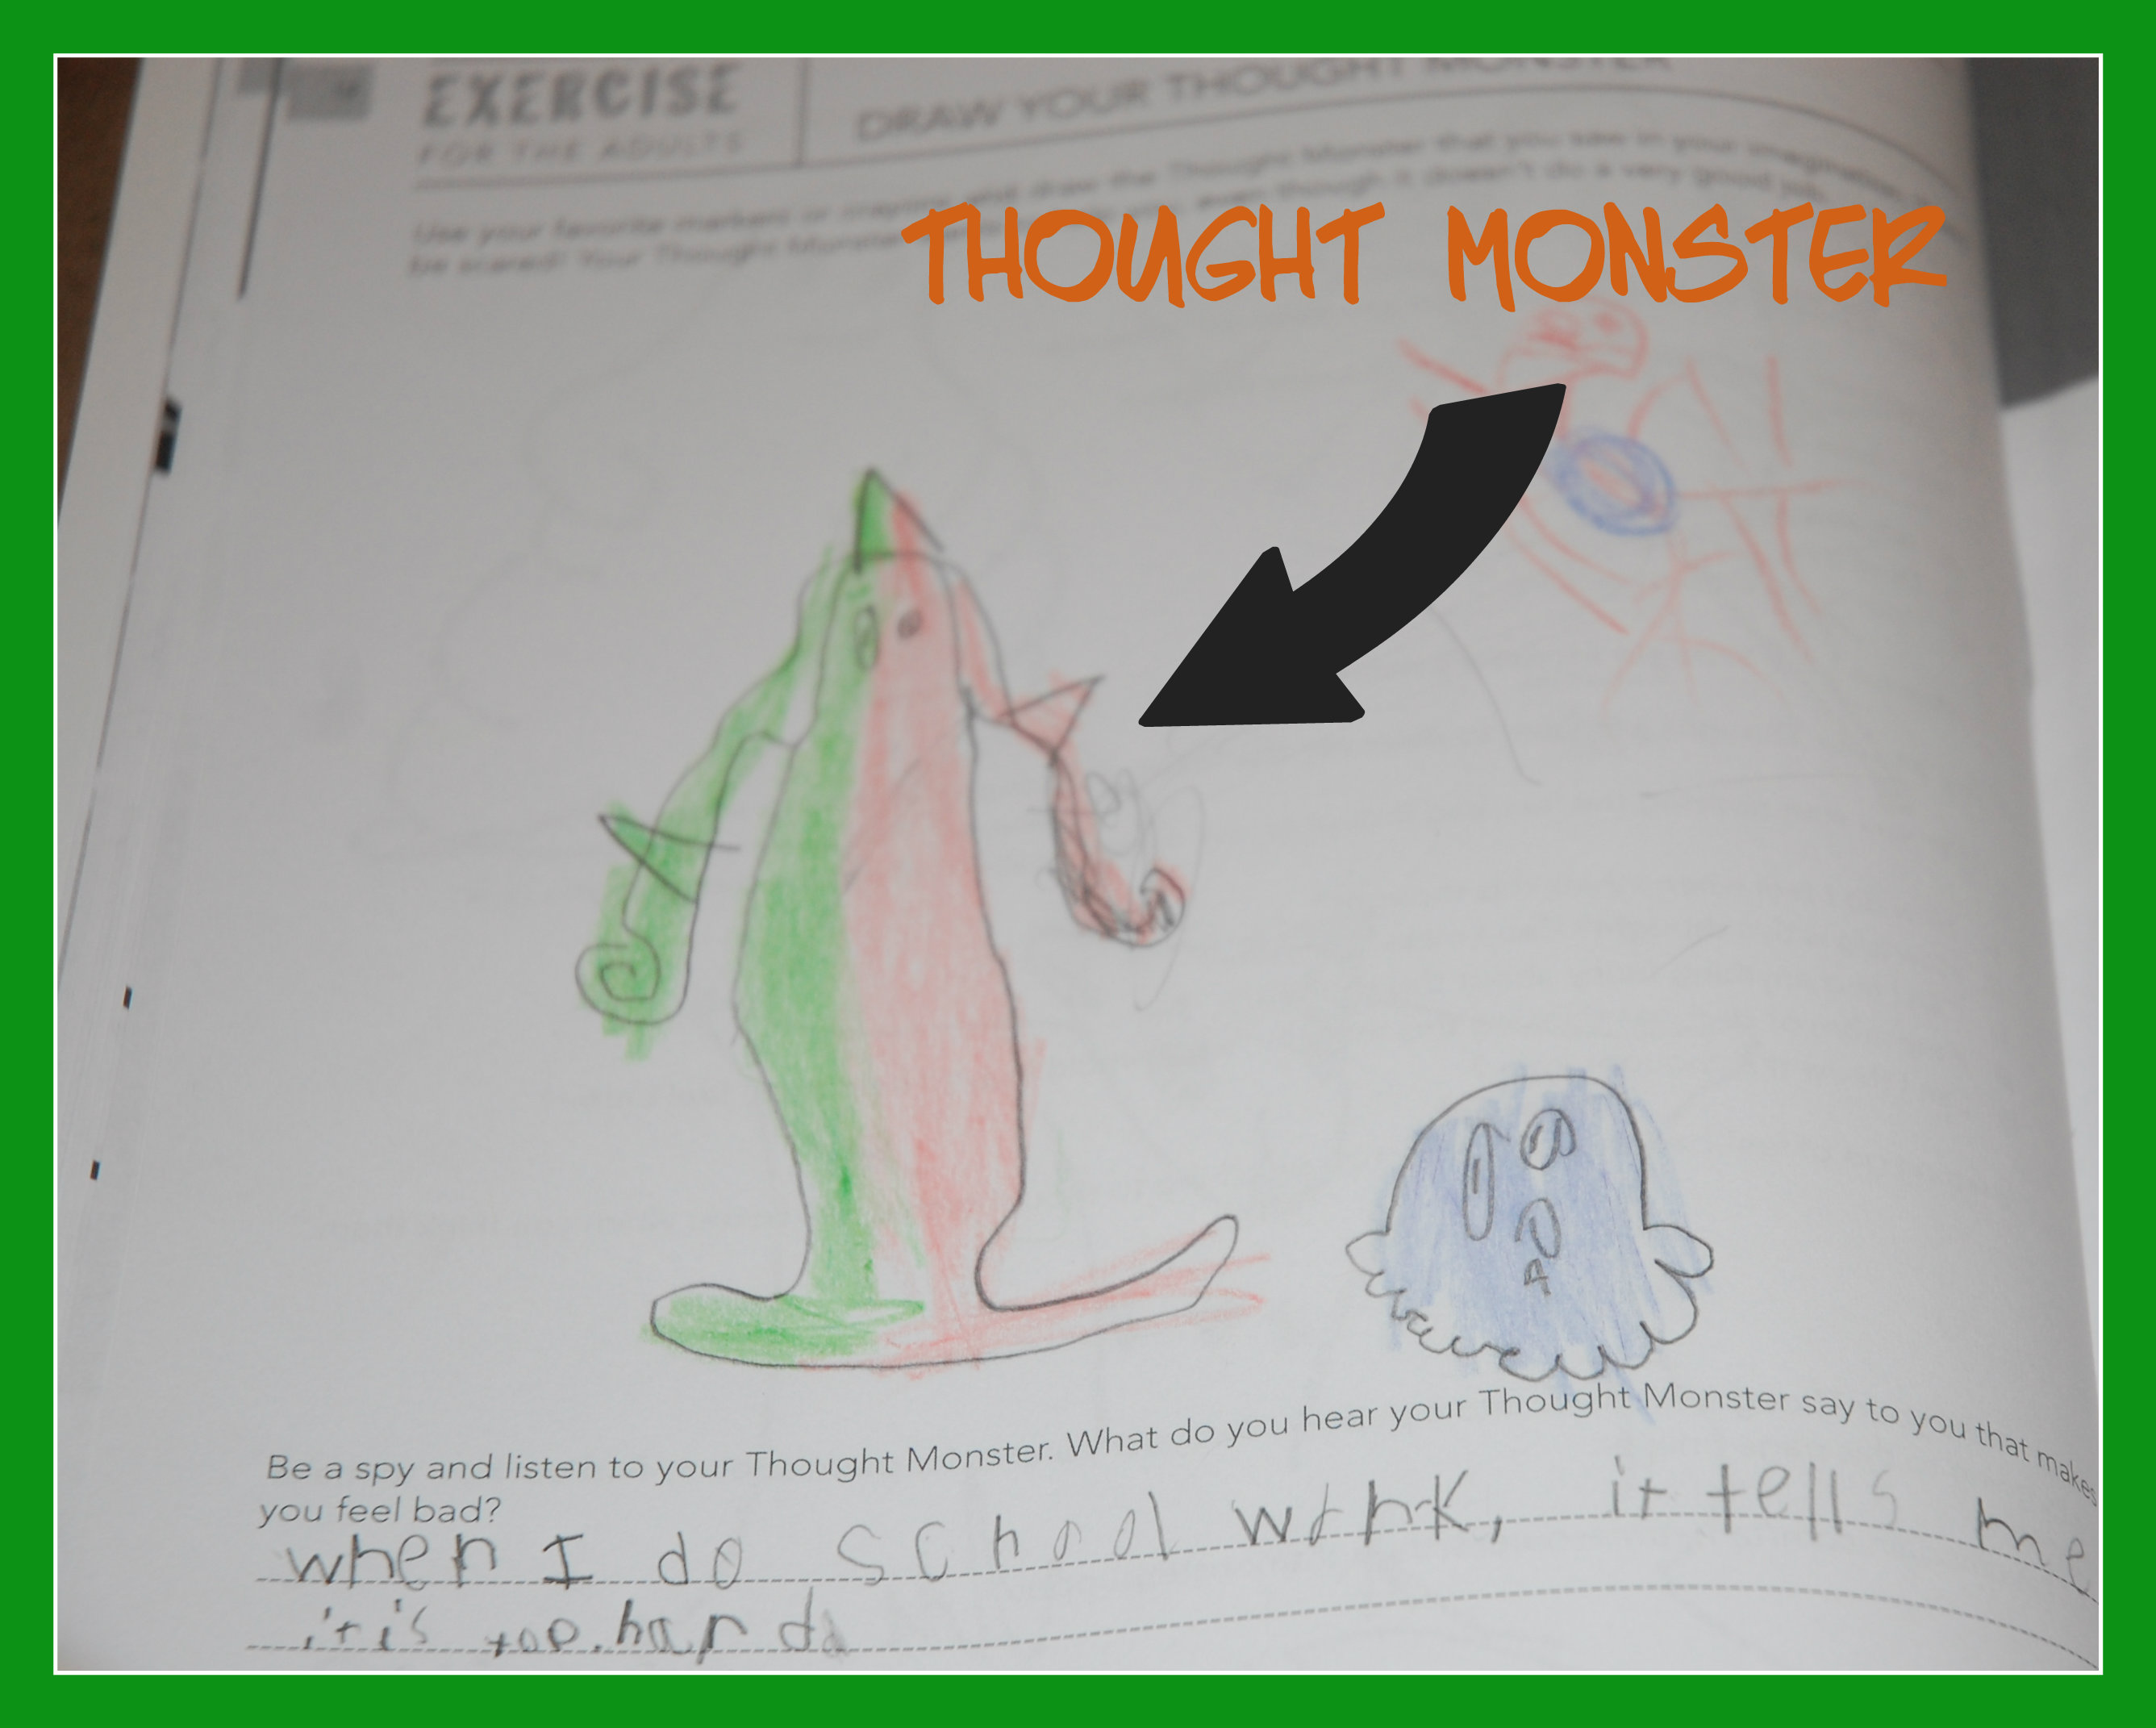 thought monster